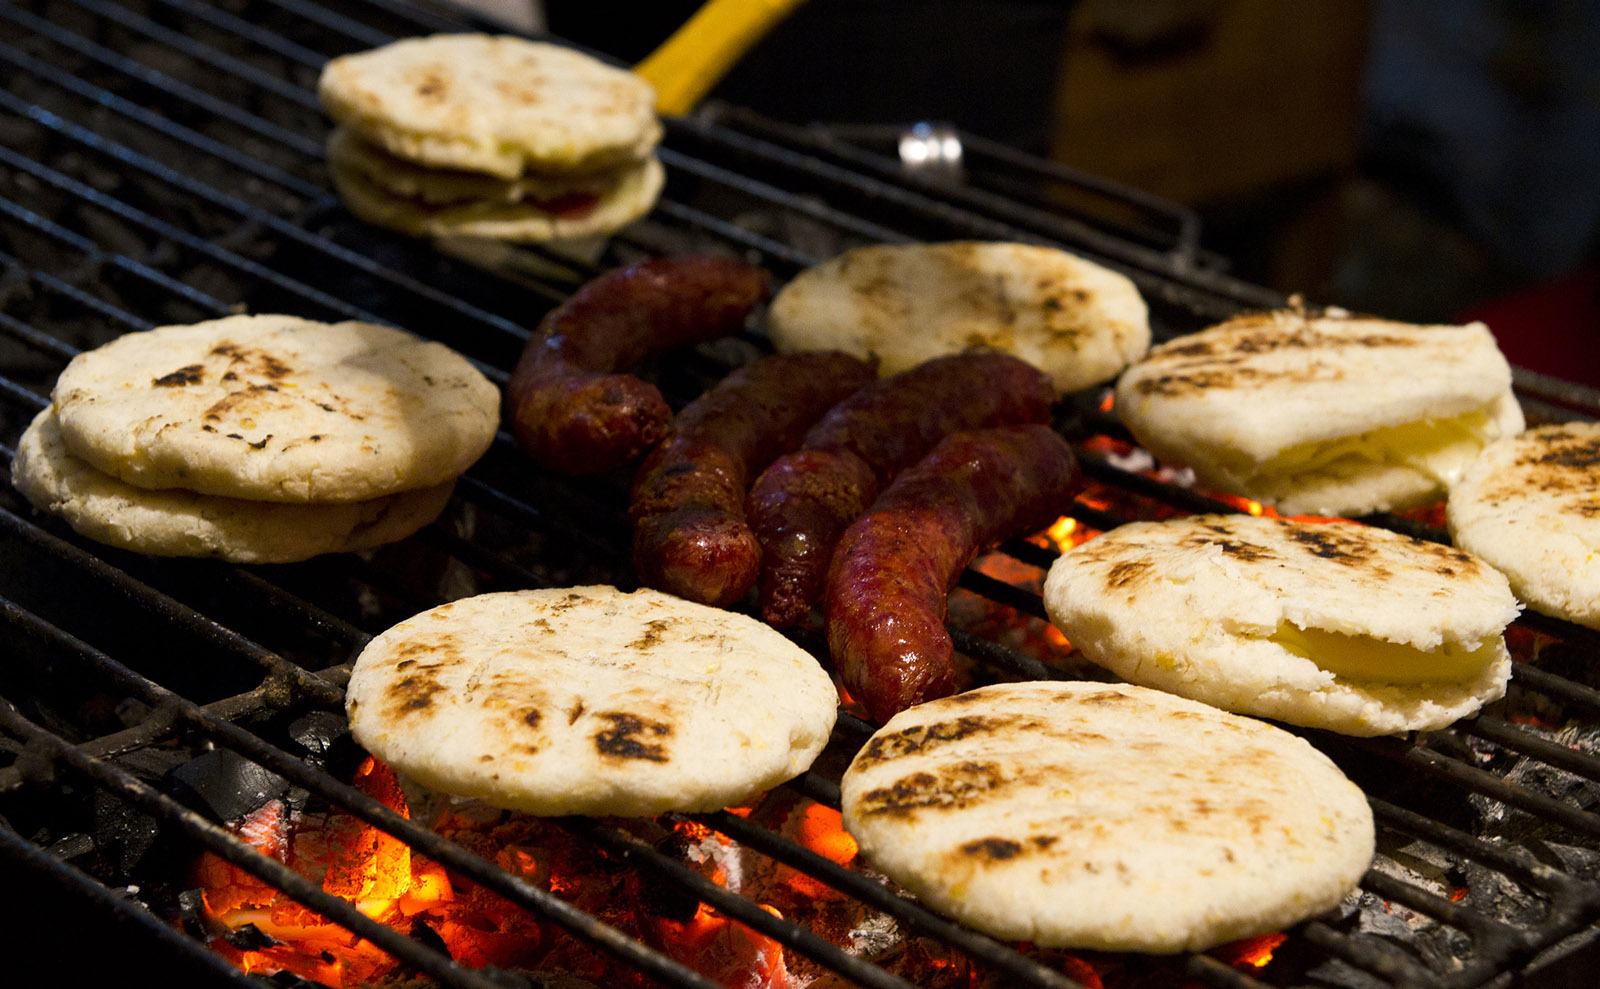 arepas and chorizo on a grill